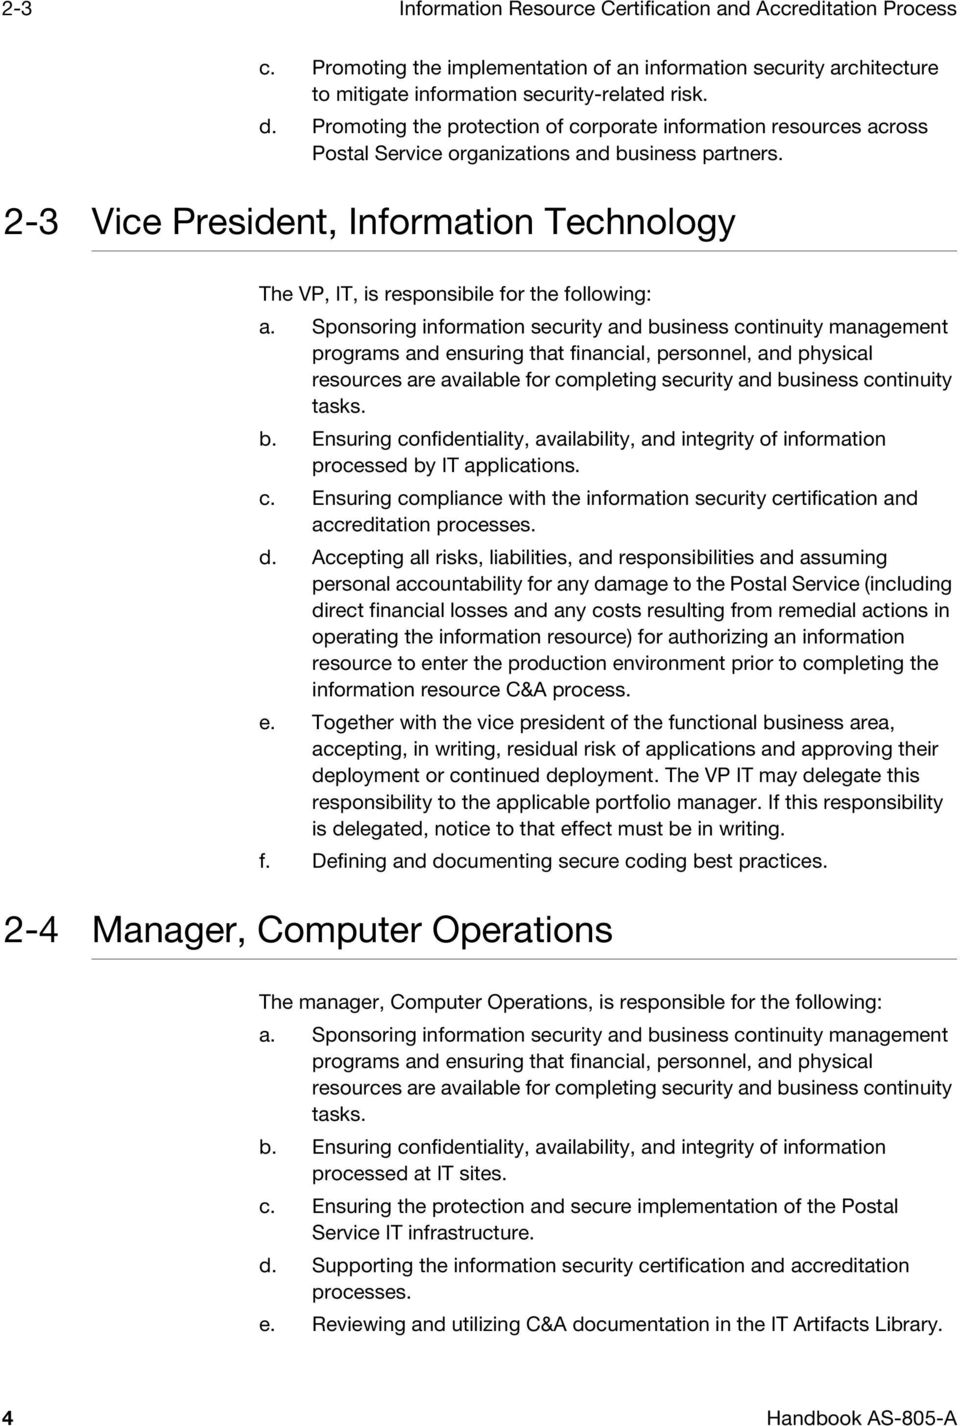 2-3 Vice President, Information Technology The VP, IT, is responsibile for the following: a.